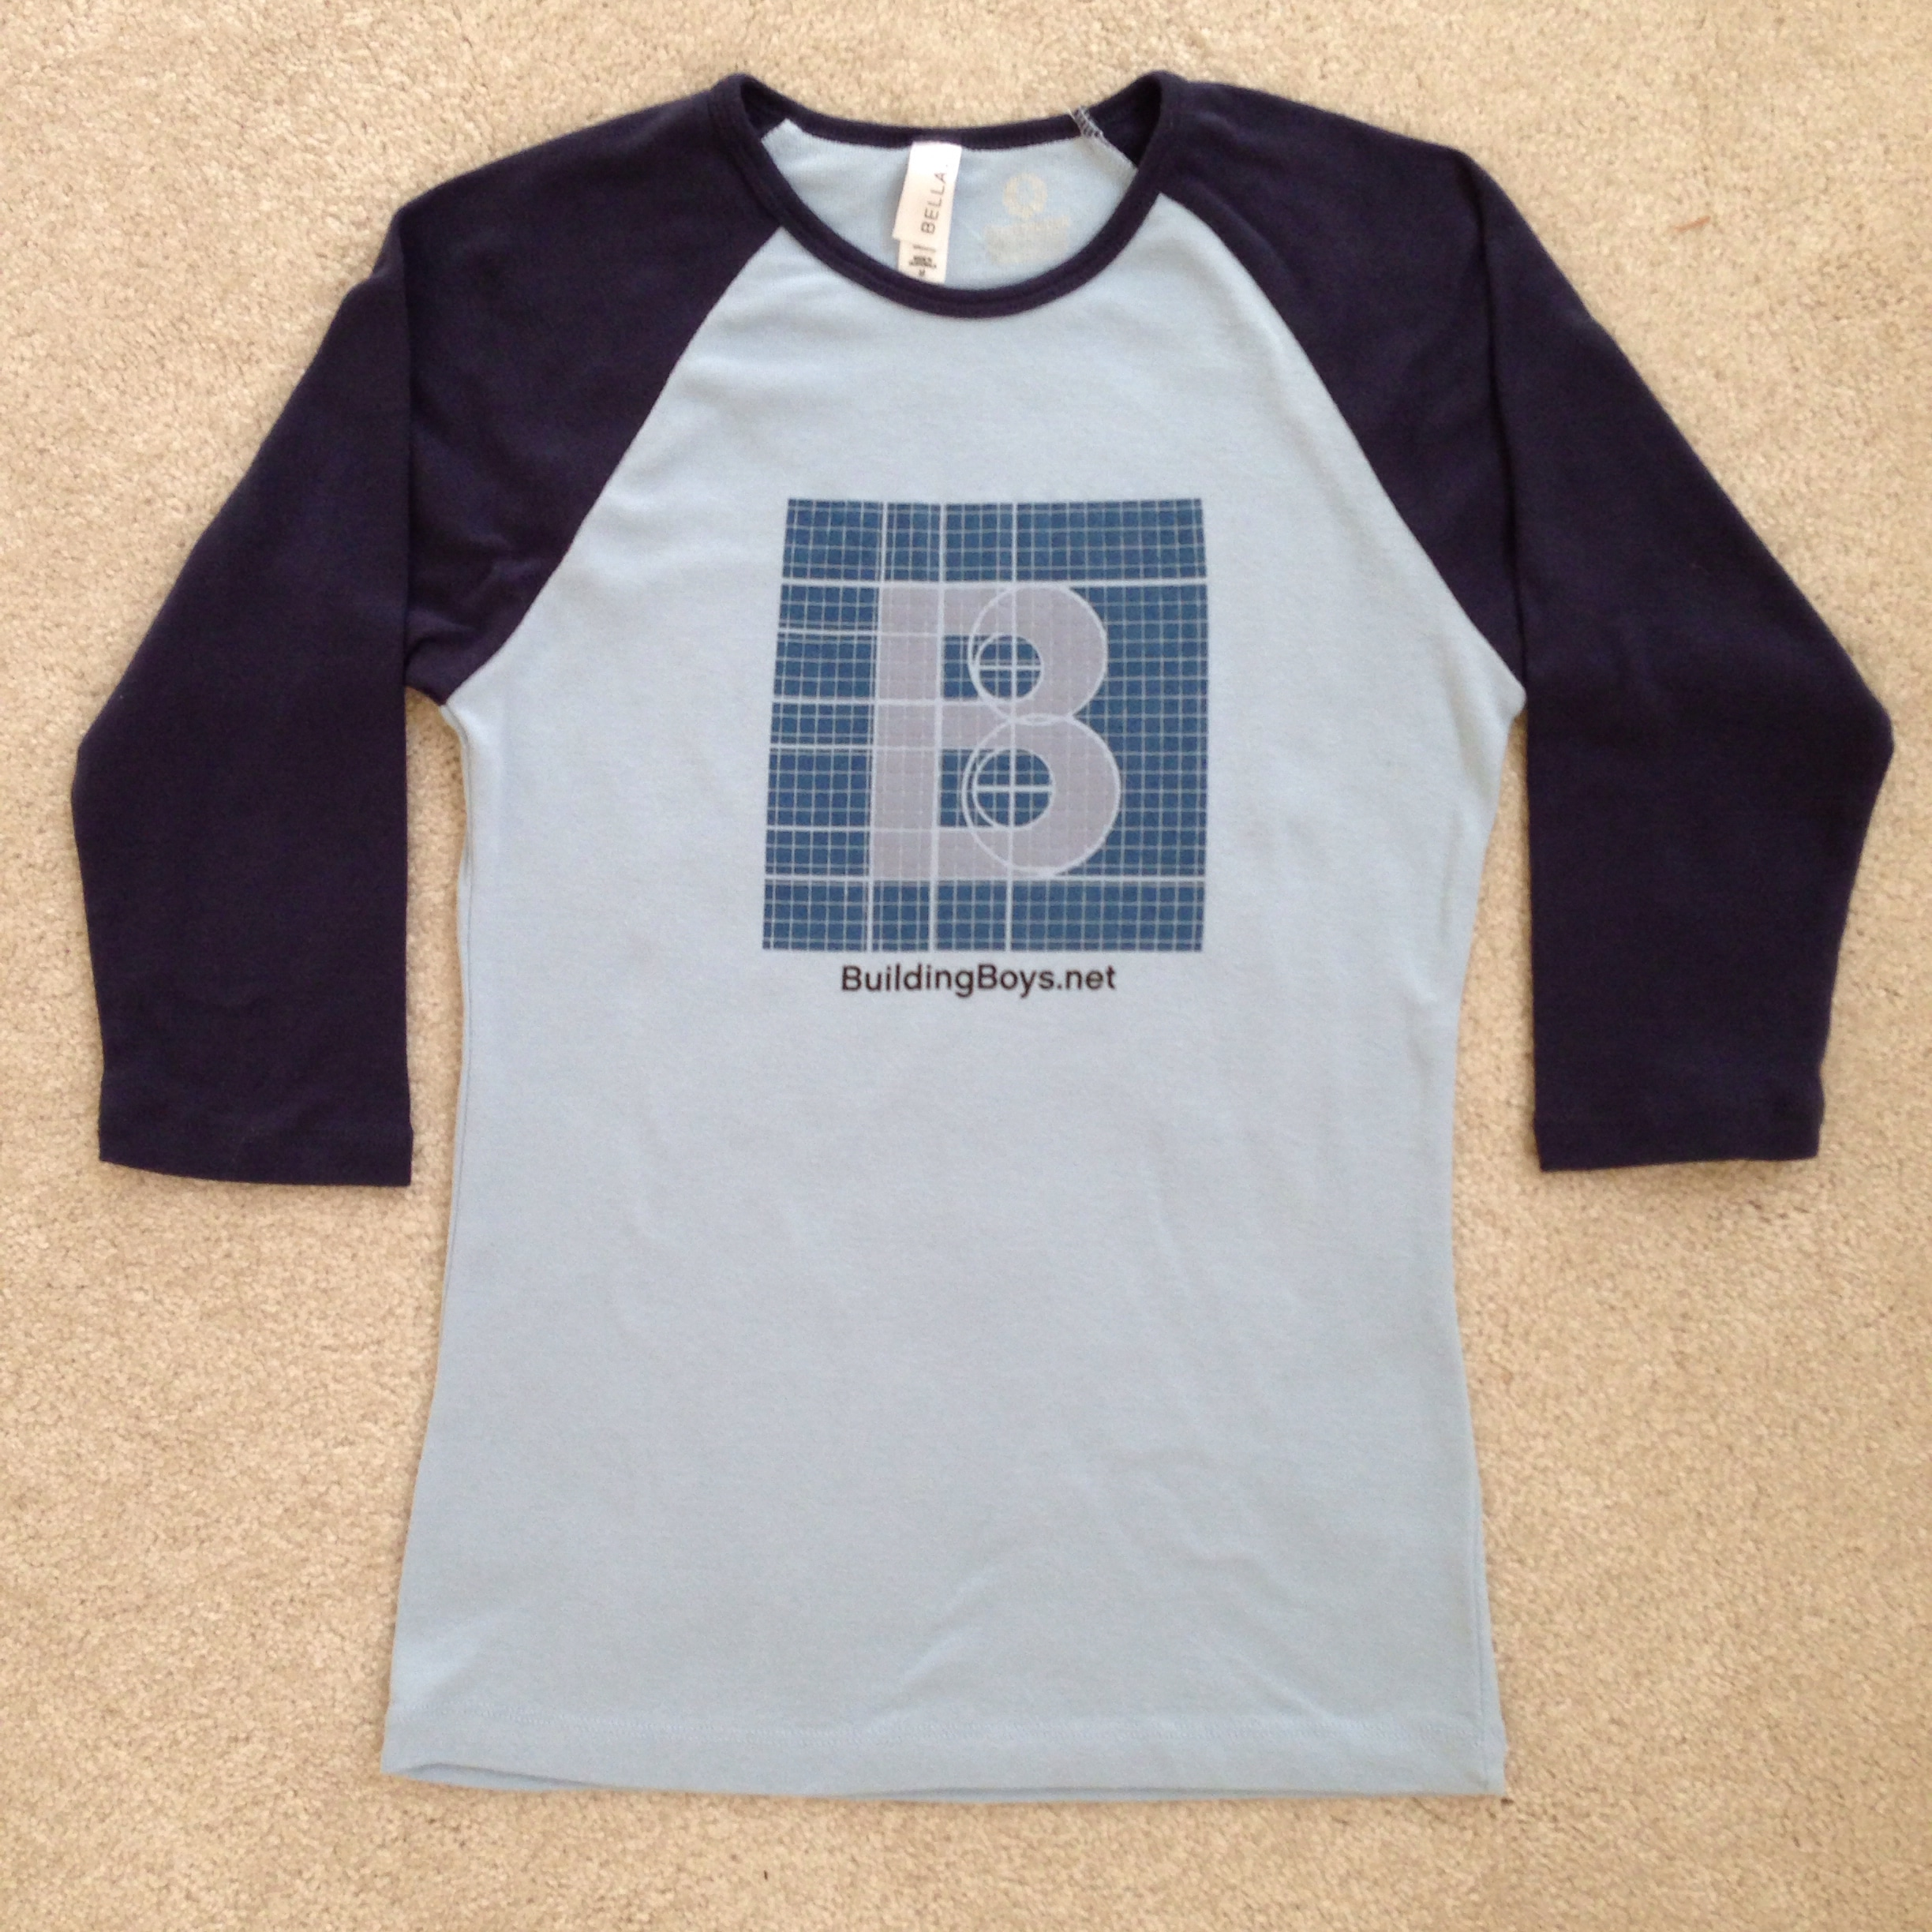 T-Shirt with Building Boys logo.